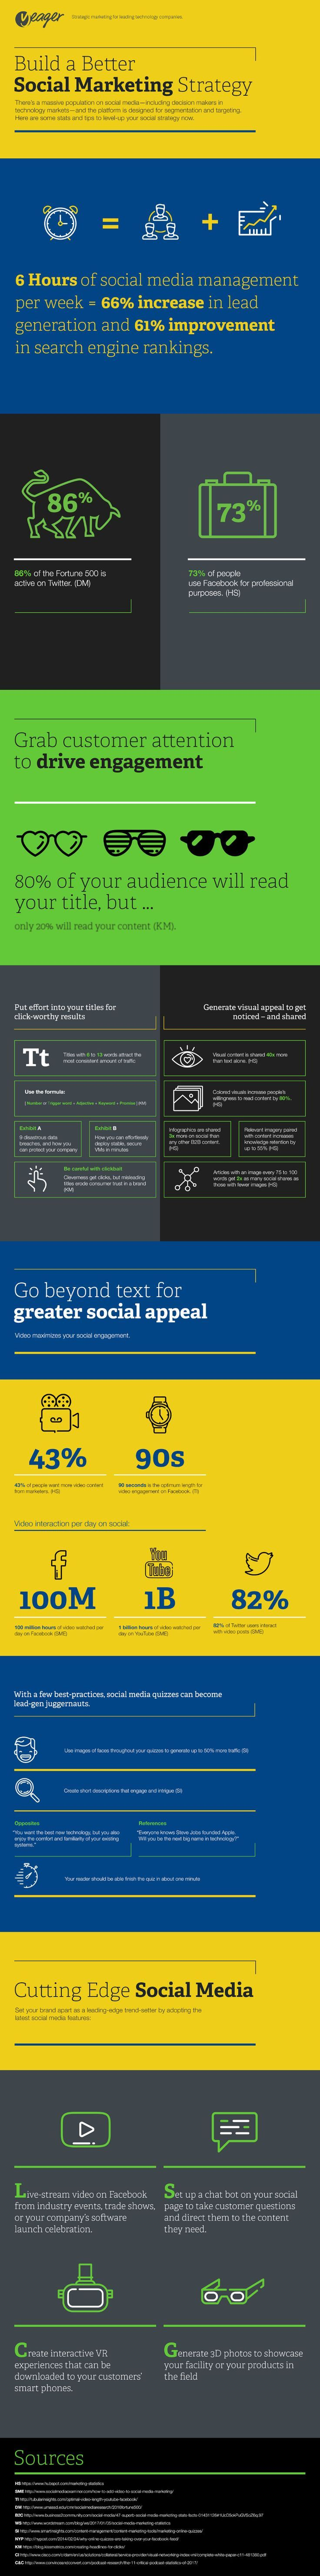 From livestreaming to quizzes, there's a lot you can be doing in your social marketing channels. See this infographic for all the data and ideas you need to build a social media strategy.